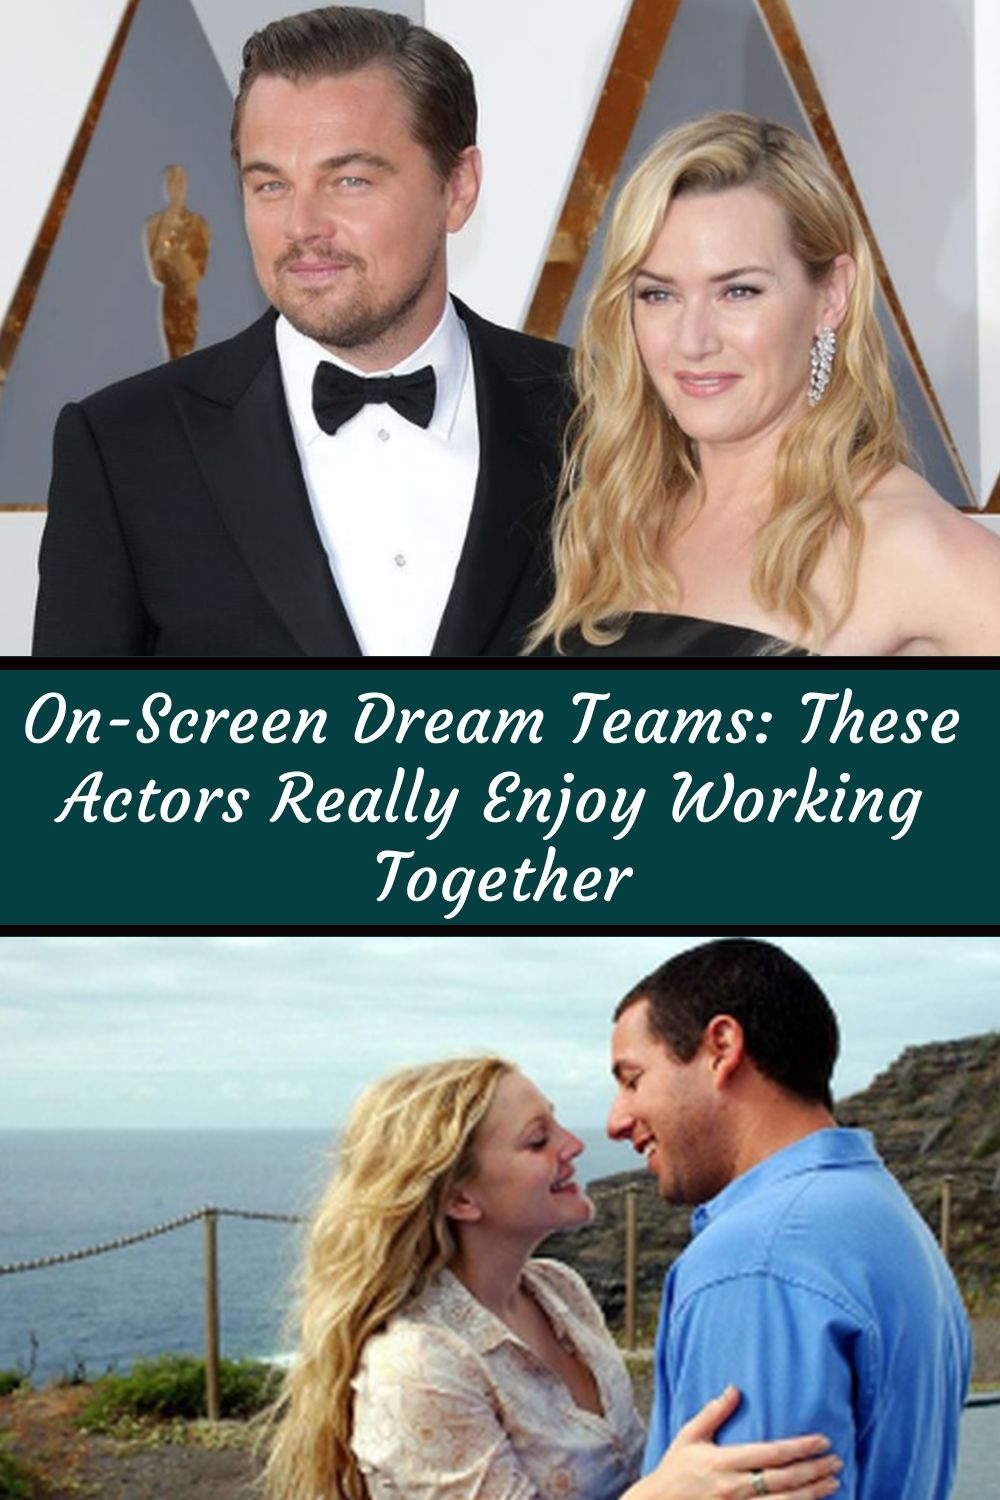 OnScreen Dream Teams These Actors Really Enjoy Working Together